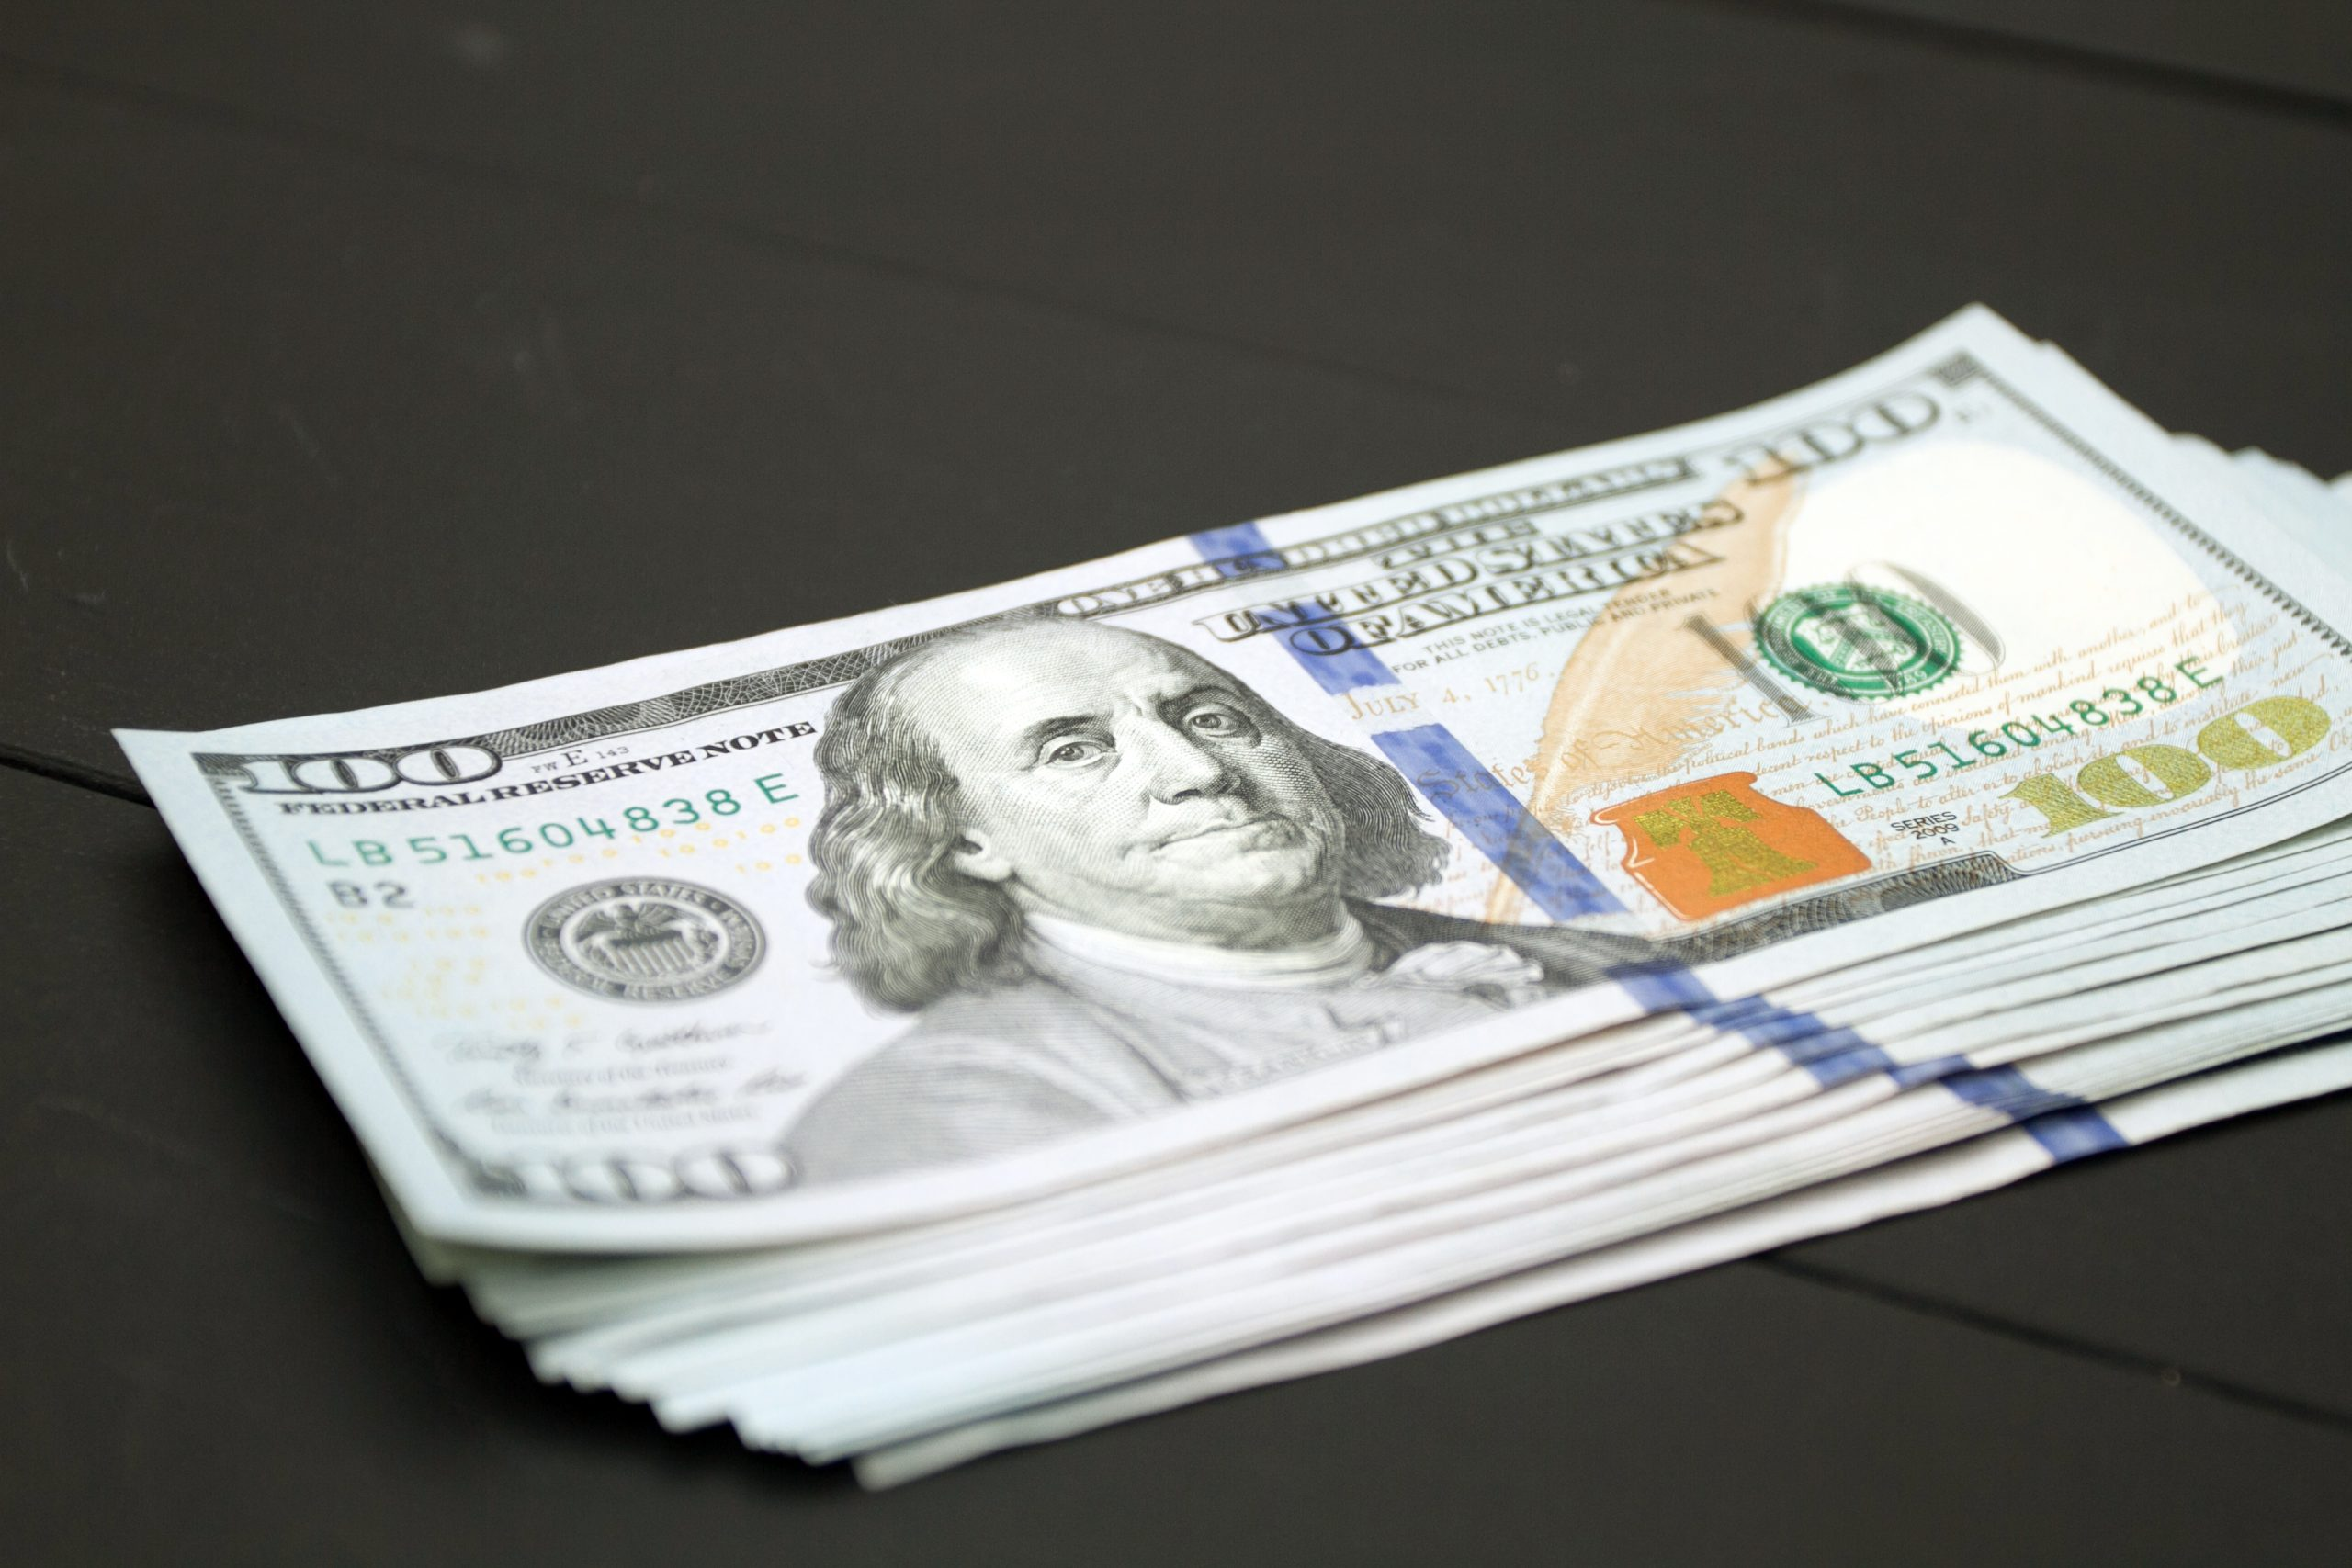 photo of Dollars money cash on a table